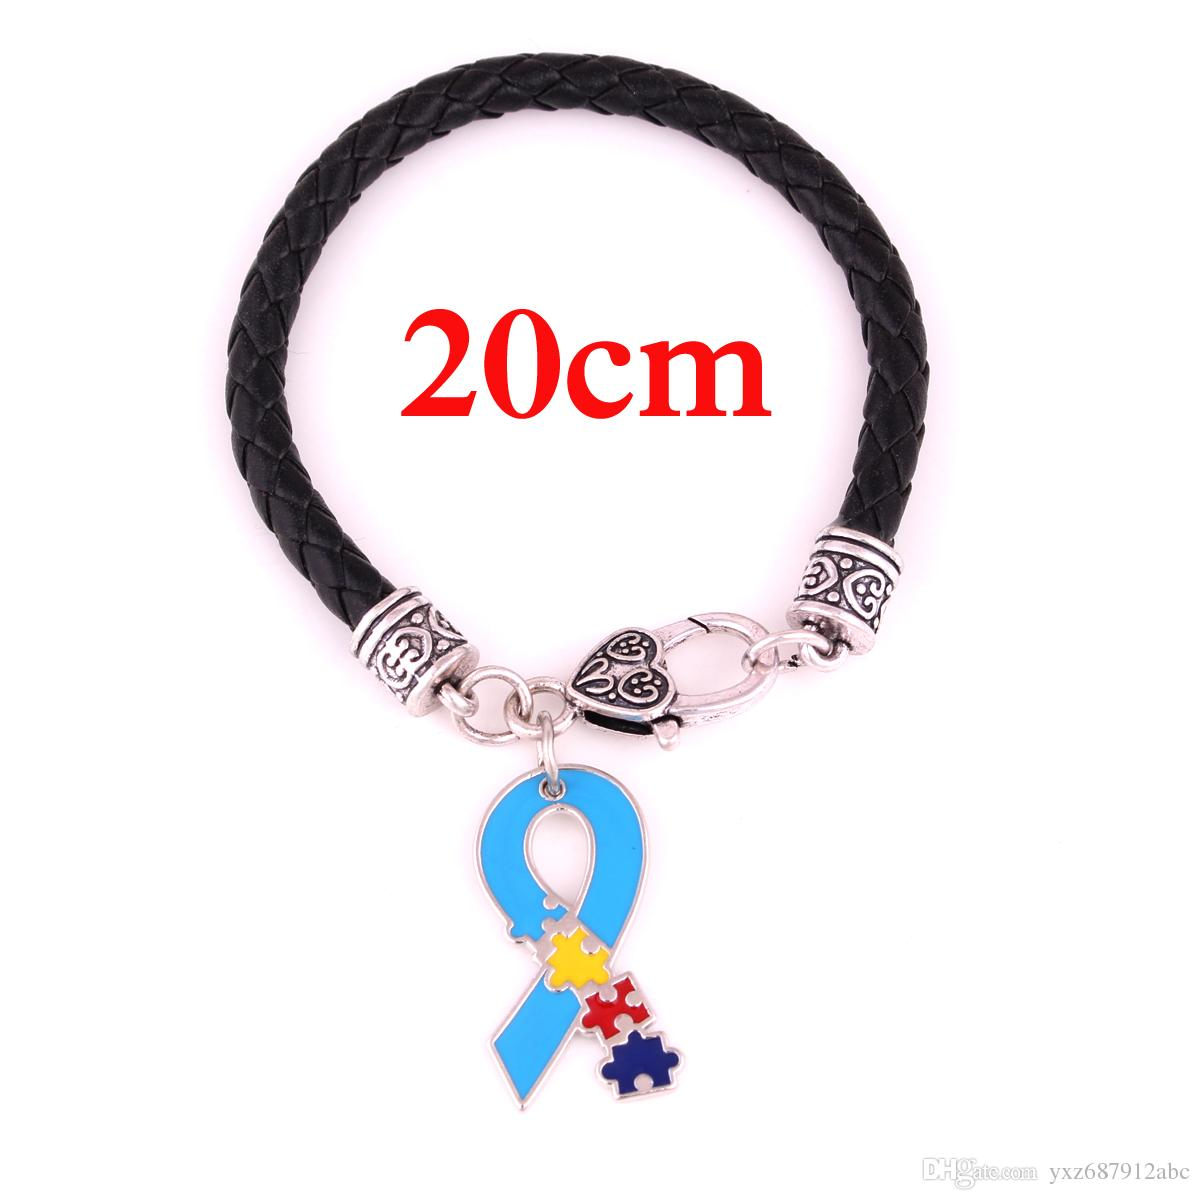 Autism Hope Jewelry Awareness Puzzle Piece Enamel Ribbon Charm Pendent Black White Leather Chain Lobster Claw Bracelets